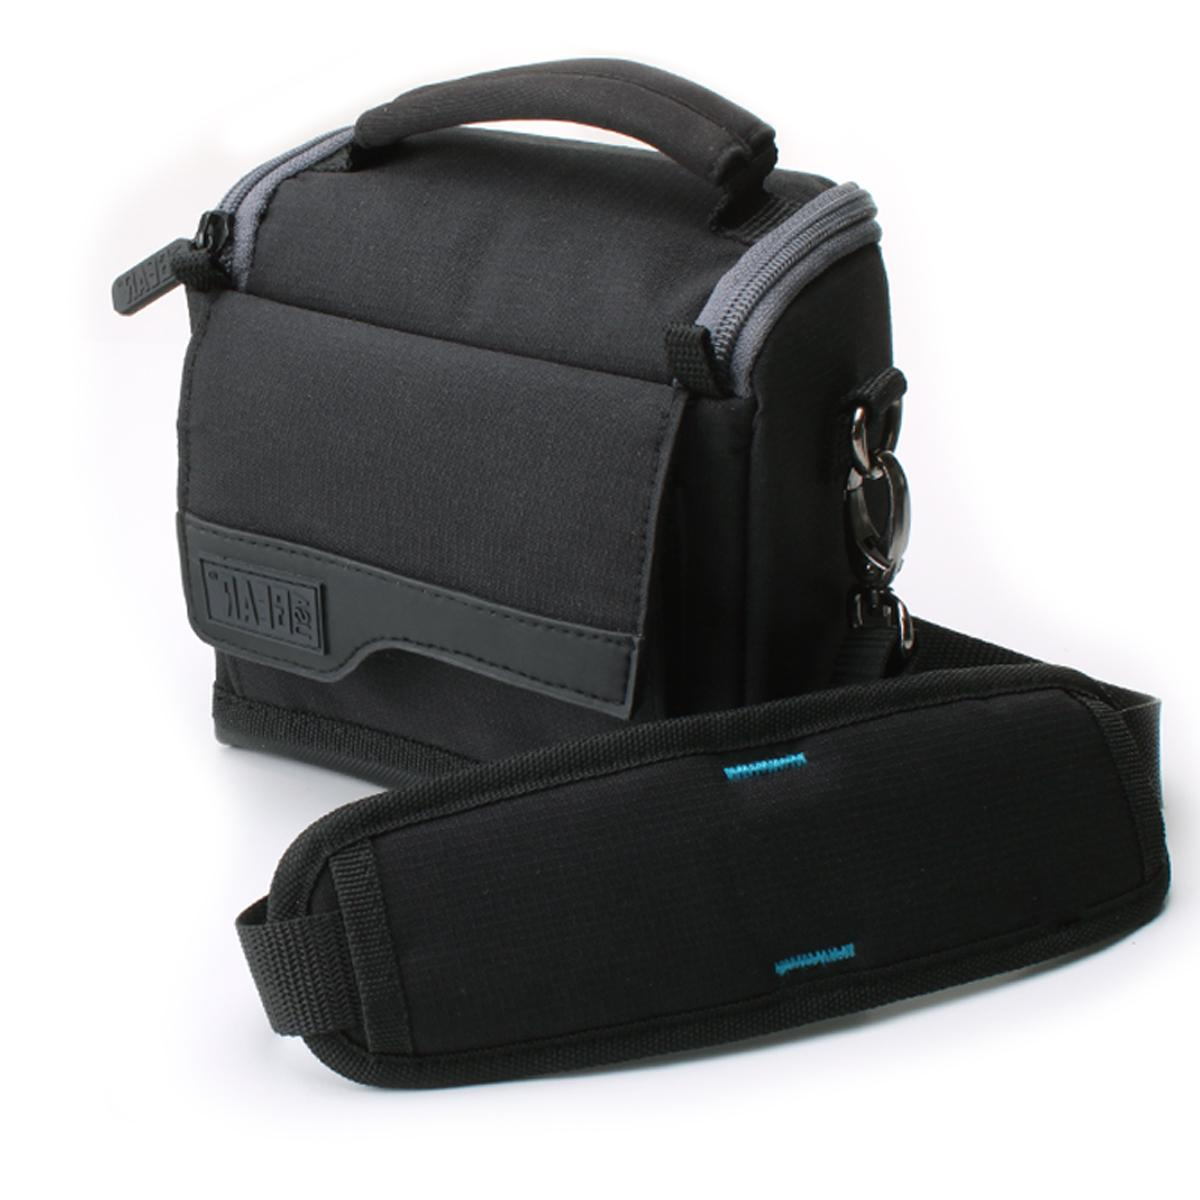 USA Gear Carrying Case for Camera - Scratch Resistant Interi